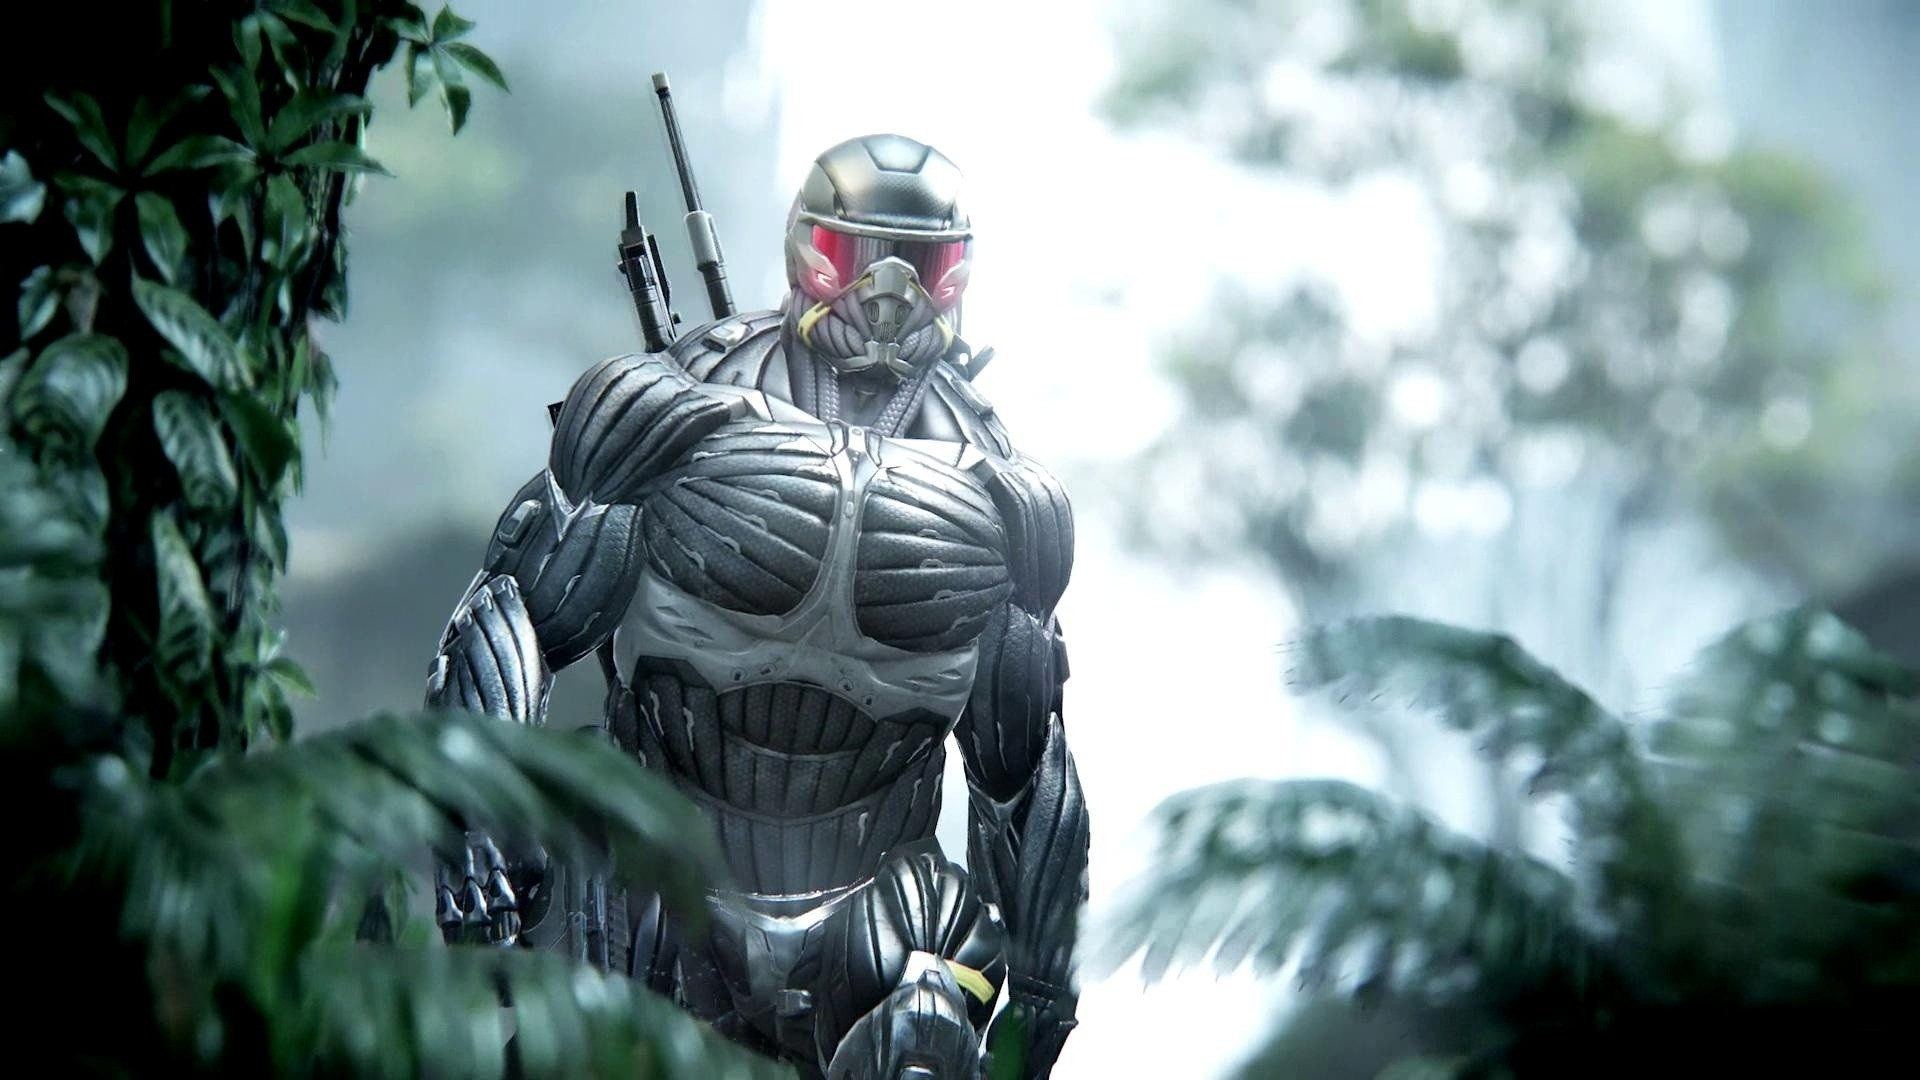 Crysis 3 Full HD Wallpaper and Background | 2560x1440 | ID:319584